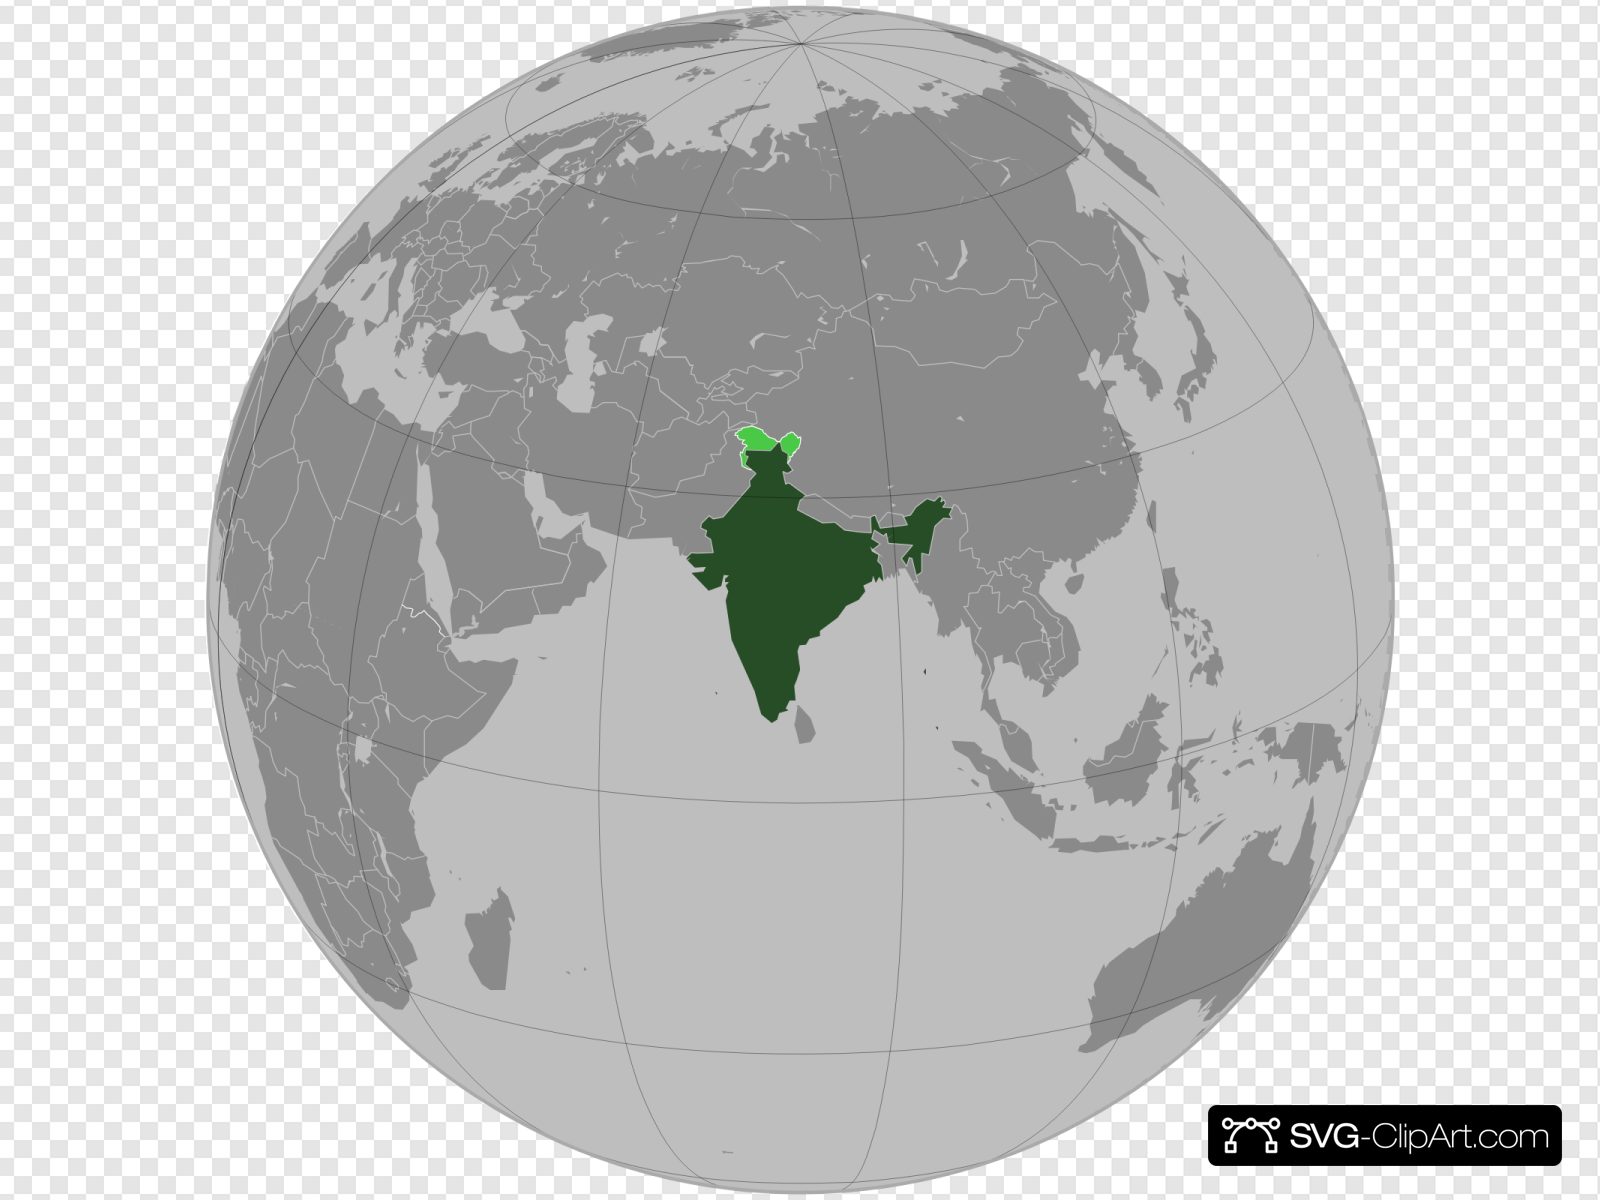 India In World Map Clip art, Icon and SVG.